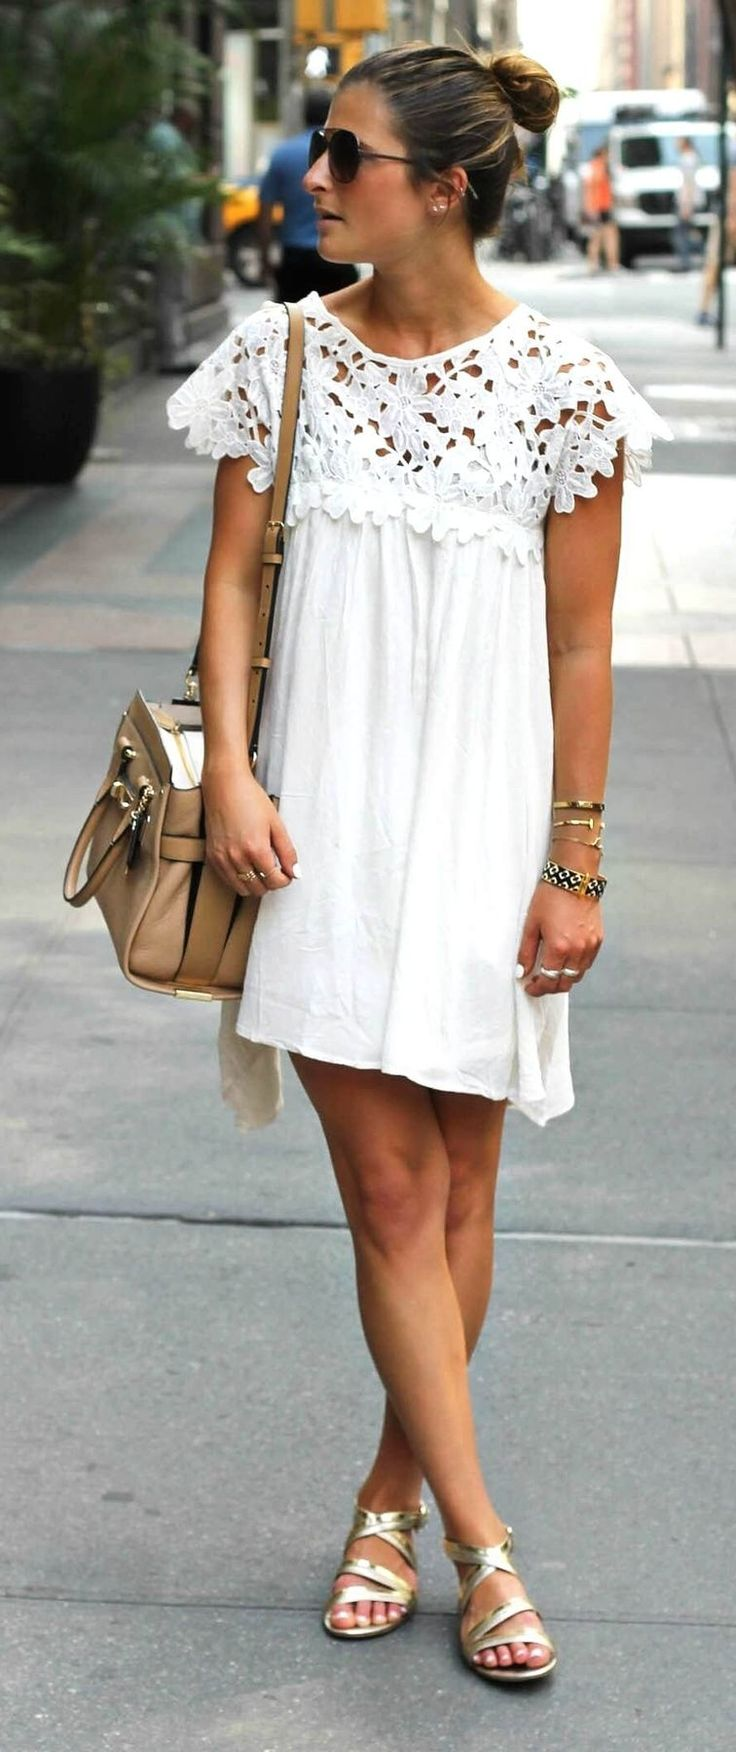 17  ideas about Sandals Outfit on Pinterest  Summer sandals ...